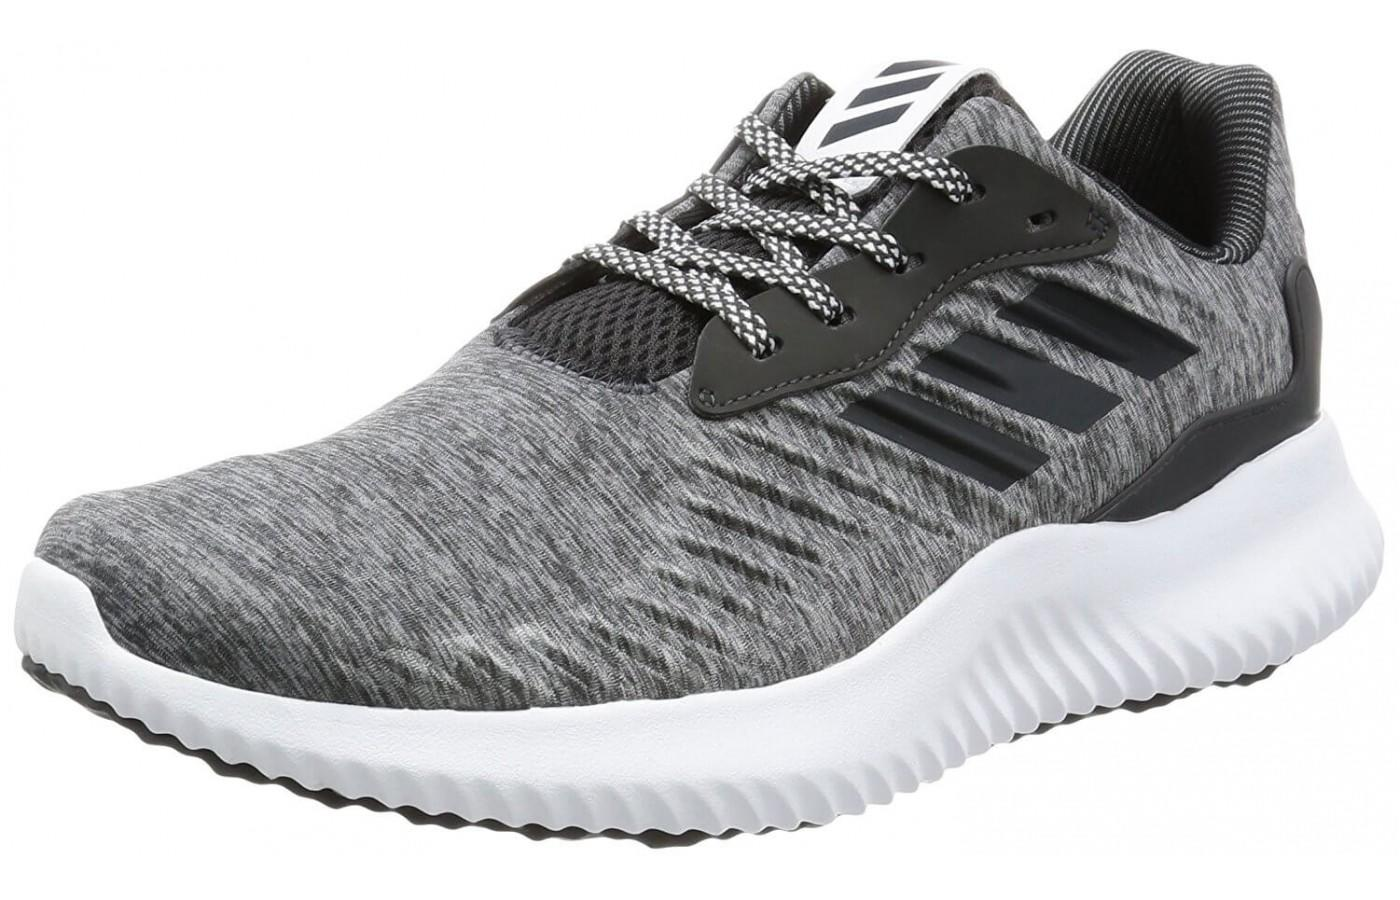 d1d61cb79c3ad Adidas Alphabounce RC Review - Buy or Not in May 2019